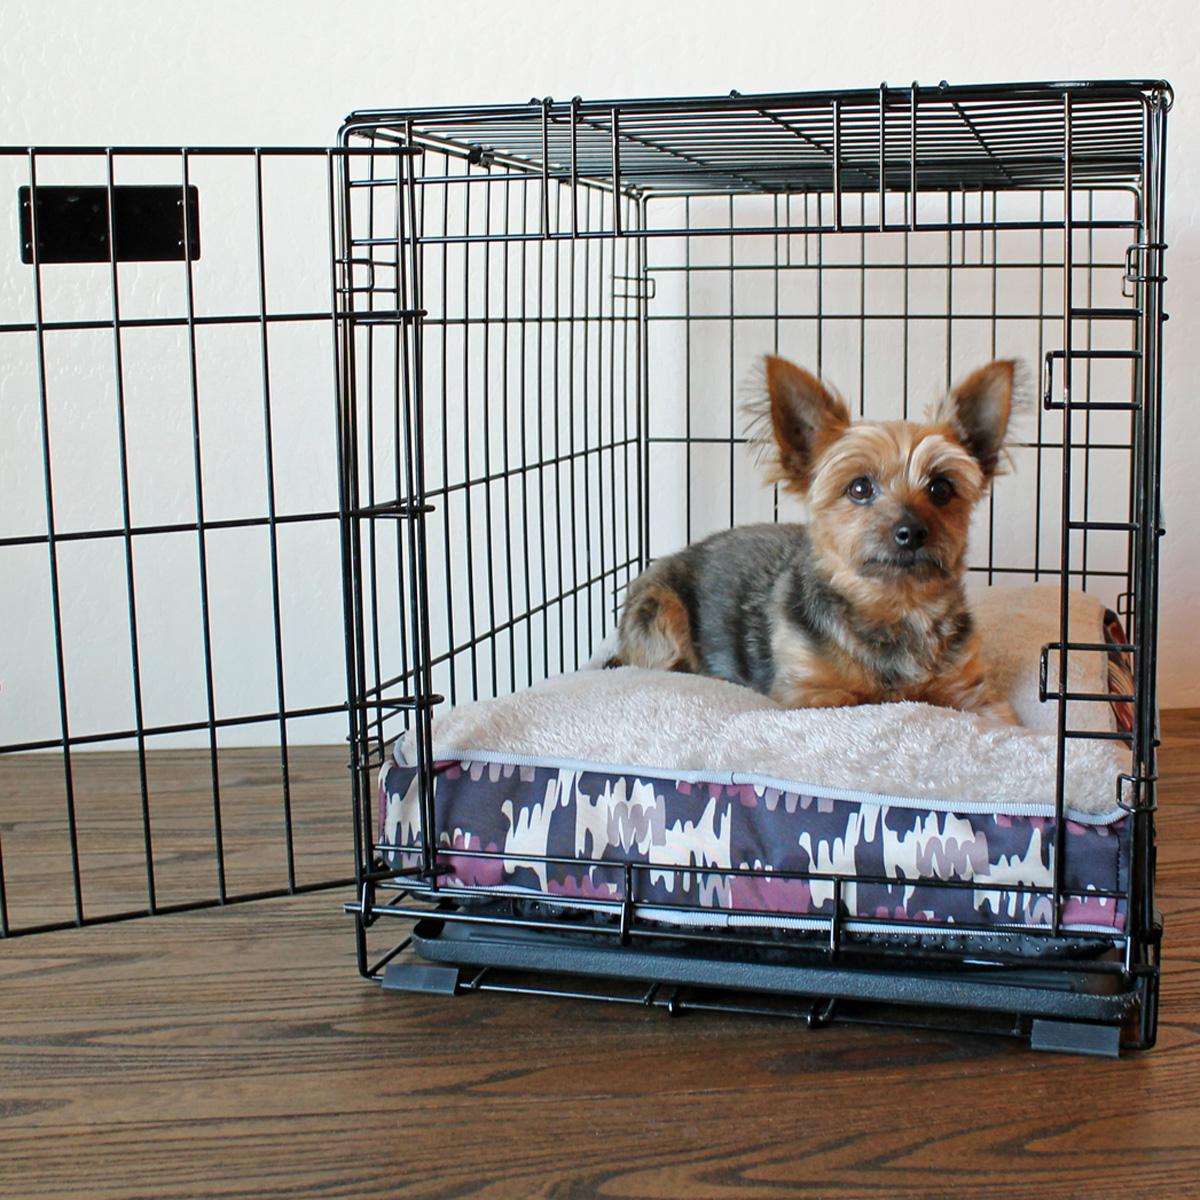 dog whines in crate